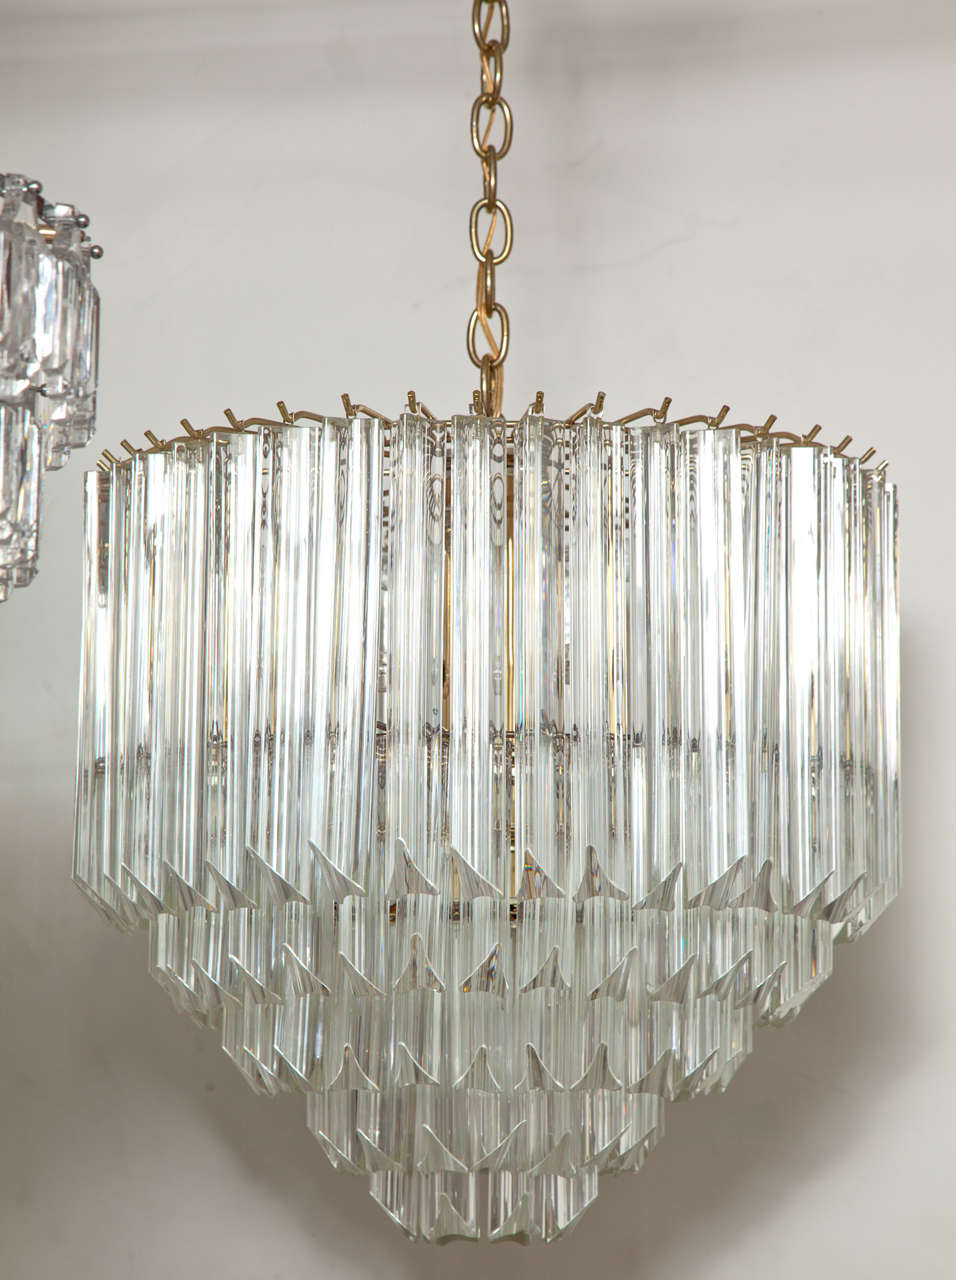 viyet designer figura lighting front chandelier furniture bella prism lig